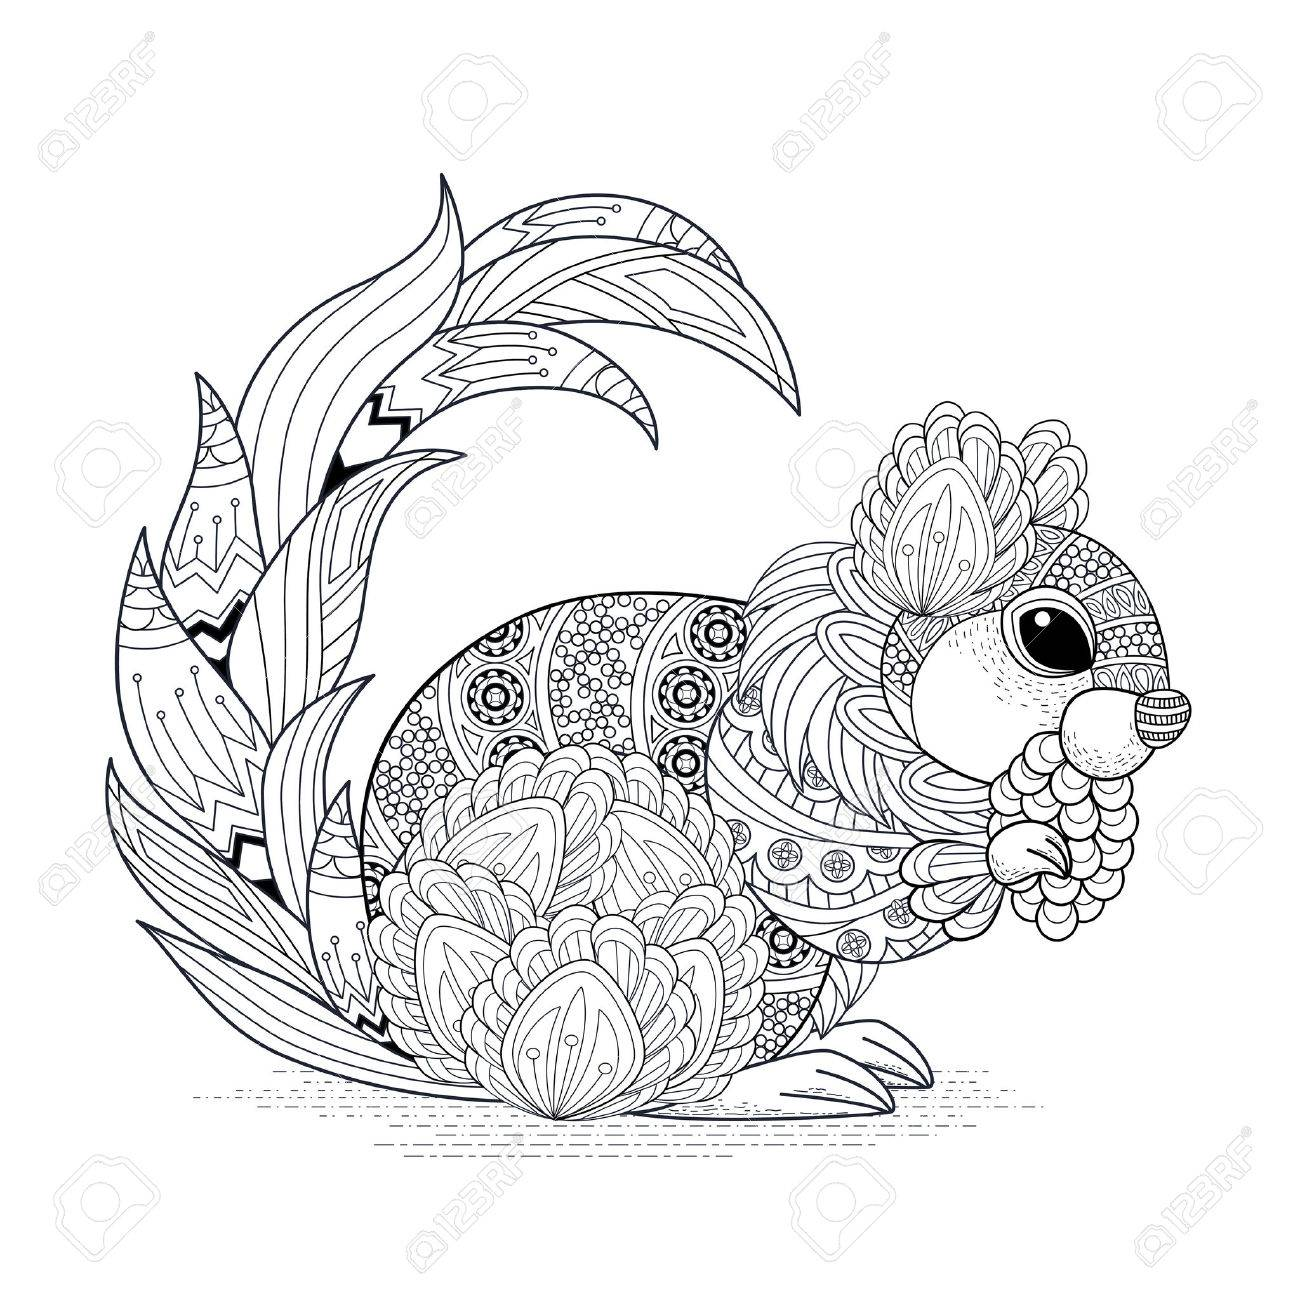 Lovely Squirrel Coloring Page In Exquisite Style Royalty Free ...